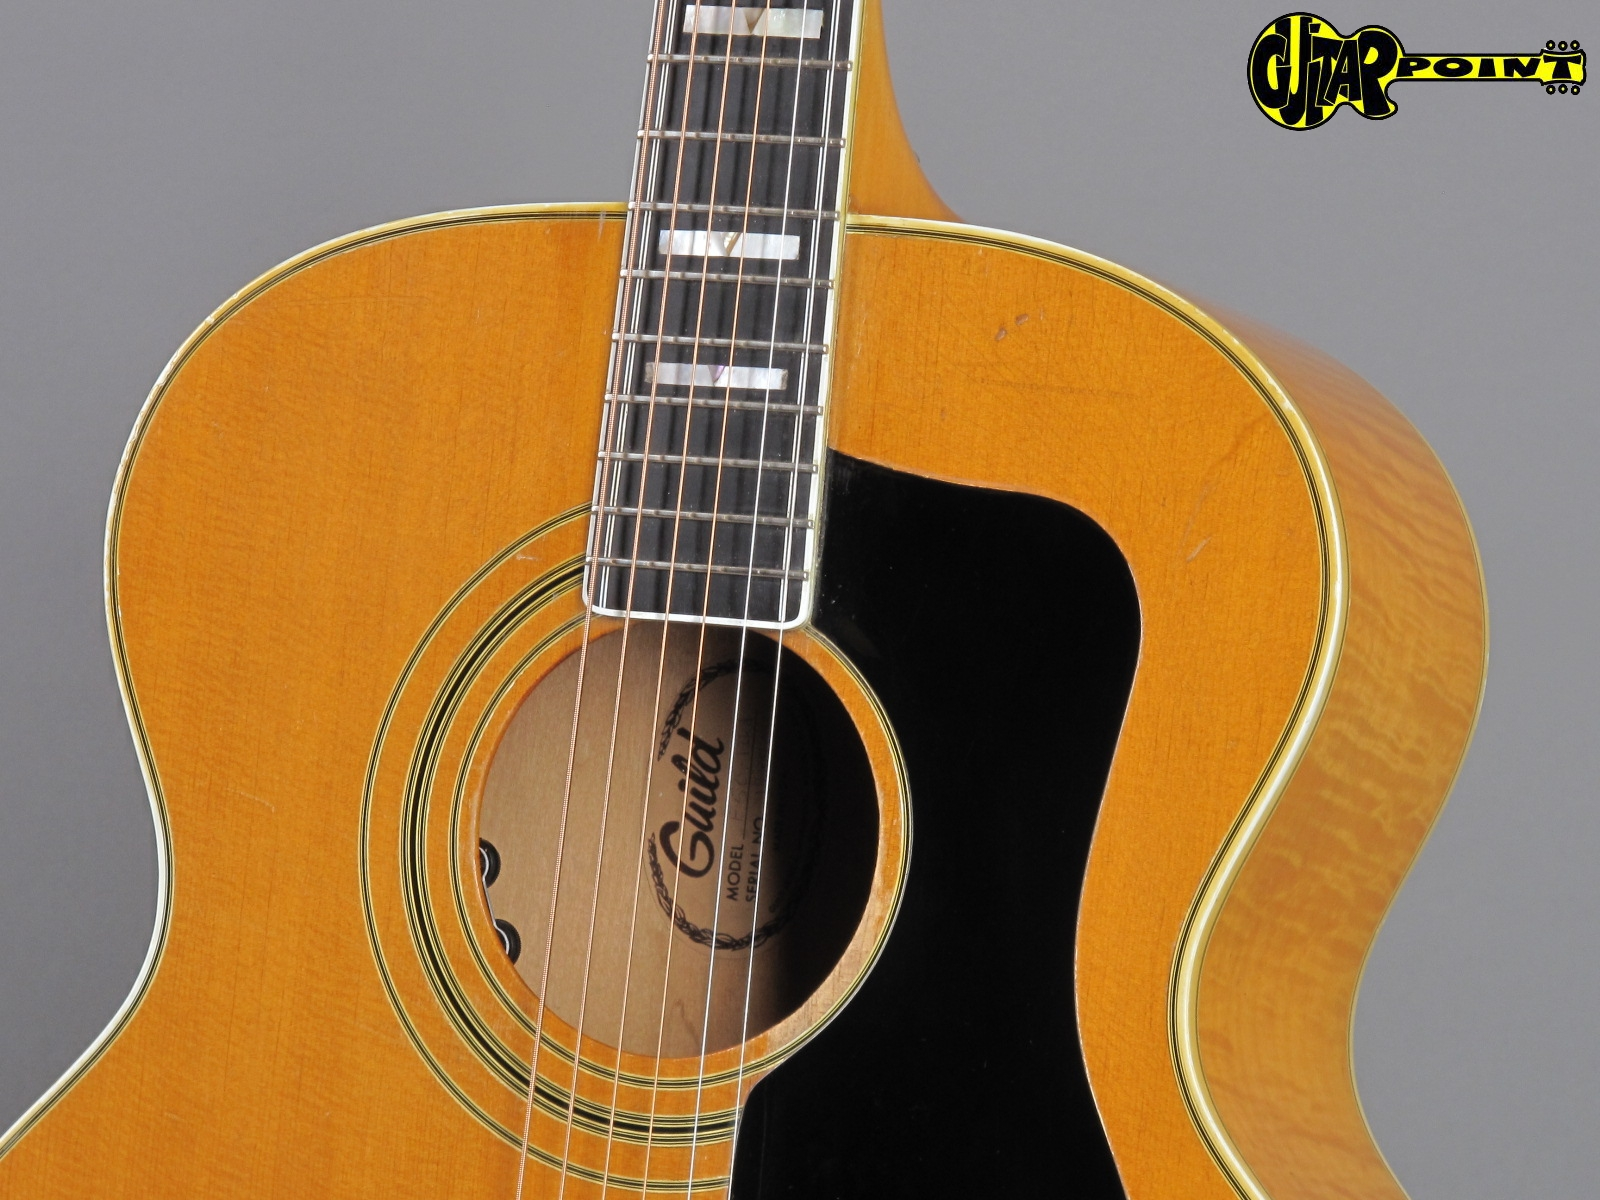 https://guitarpoint.de/app/uploads/products/1975-guild-navarre-f-50-natural-made-in-usa/Guild75F50NT128904_5.jpg